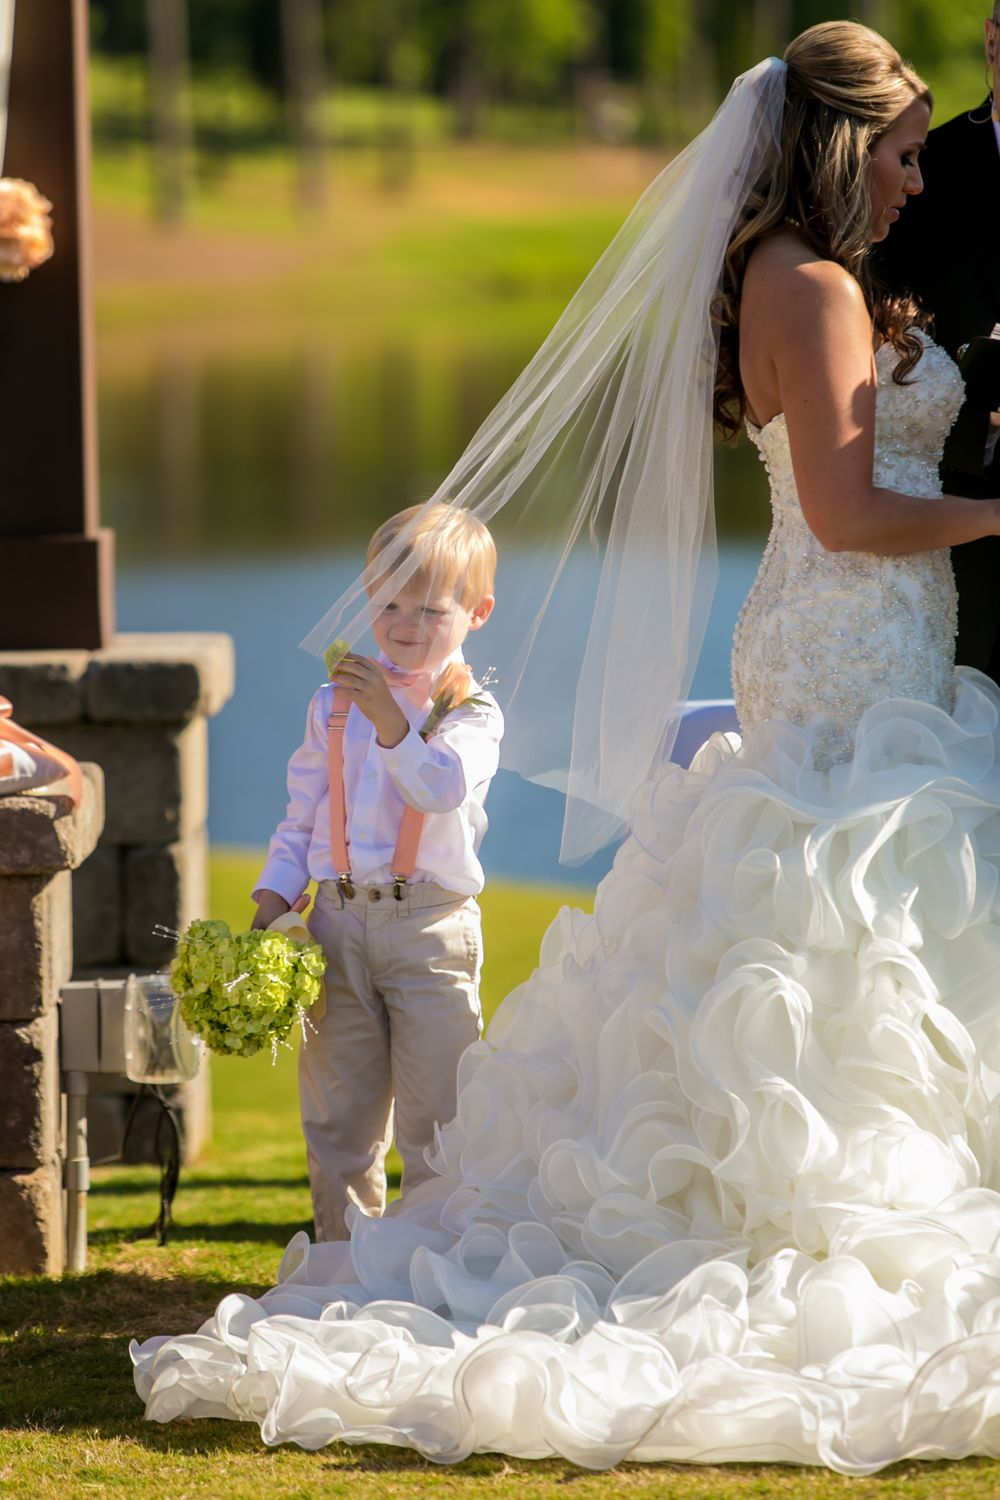 Ring bearer touches the bride's veil during a wedding ceremony at Cobblestone Golf Club in Blythewood, SC